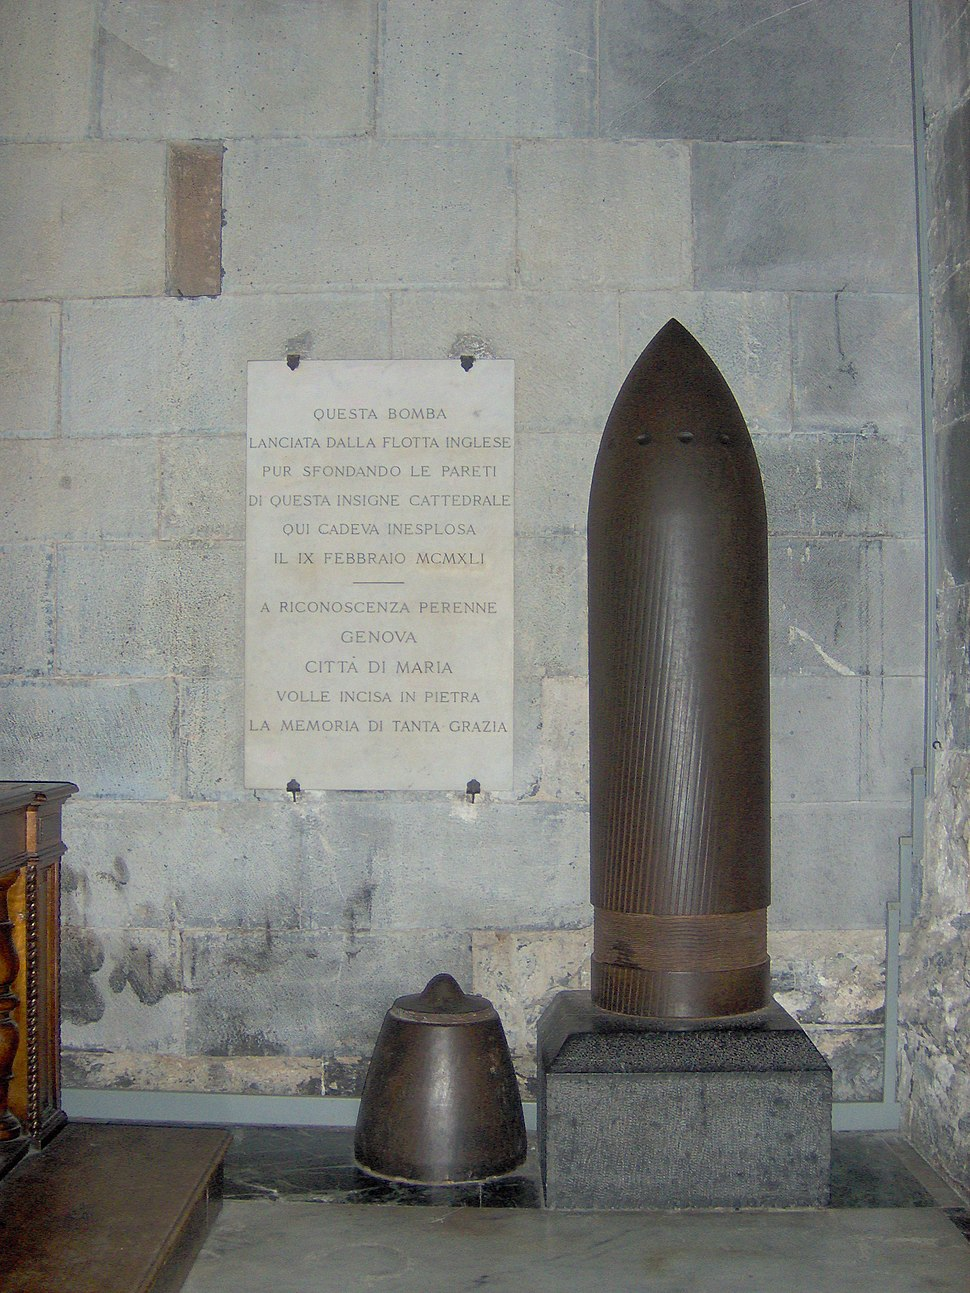 Unexploded shell in the cathedral in Genoa (Italy)